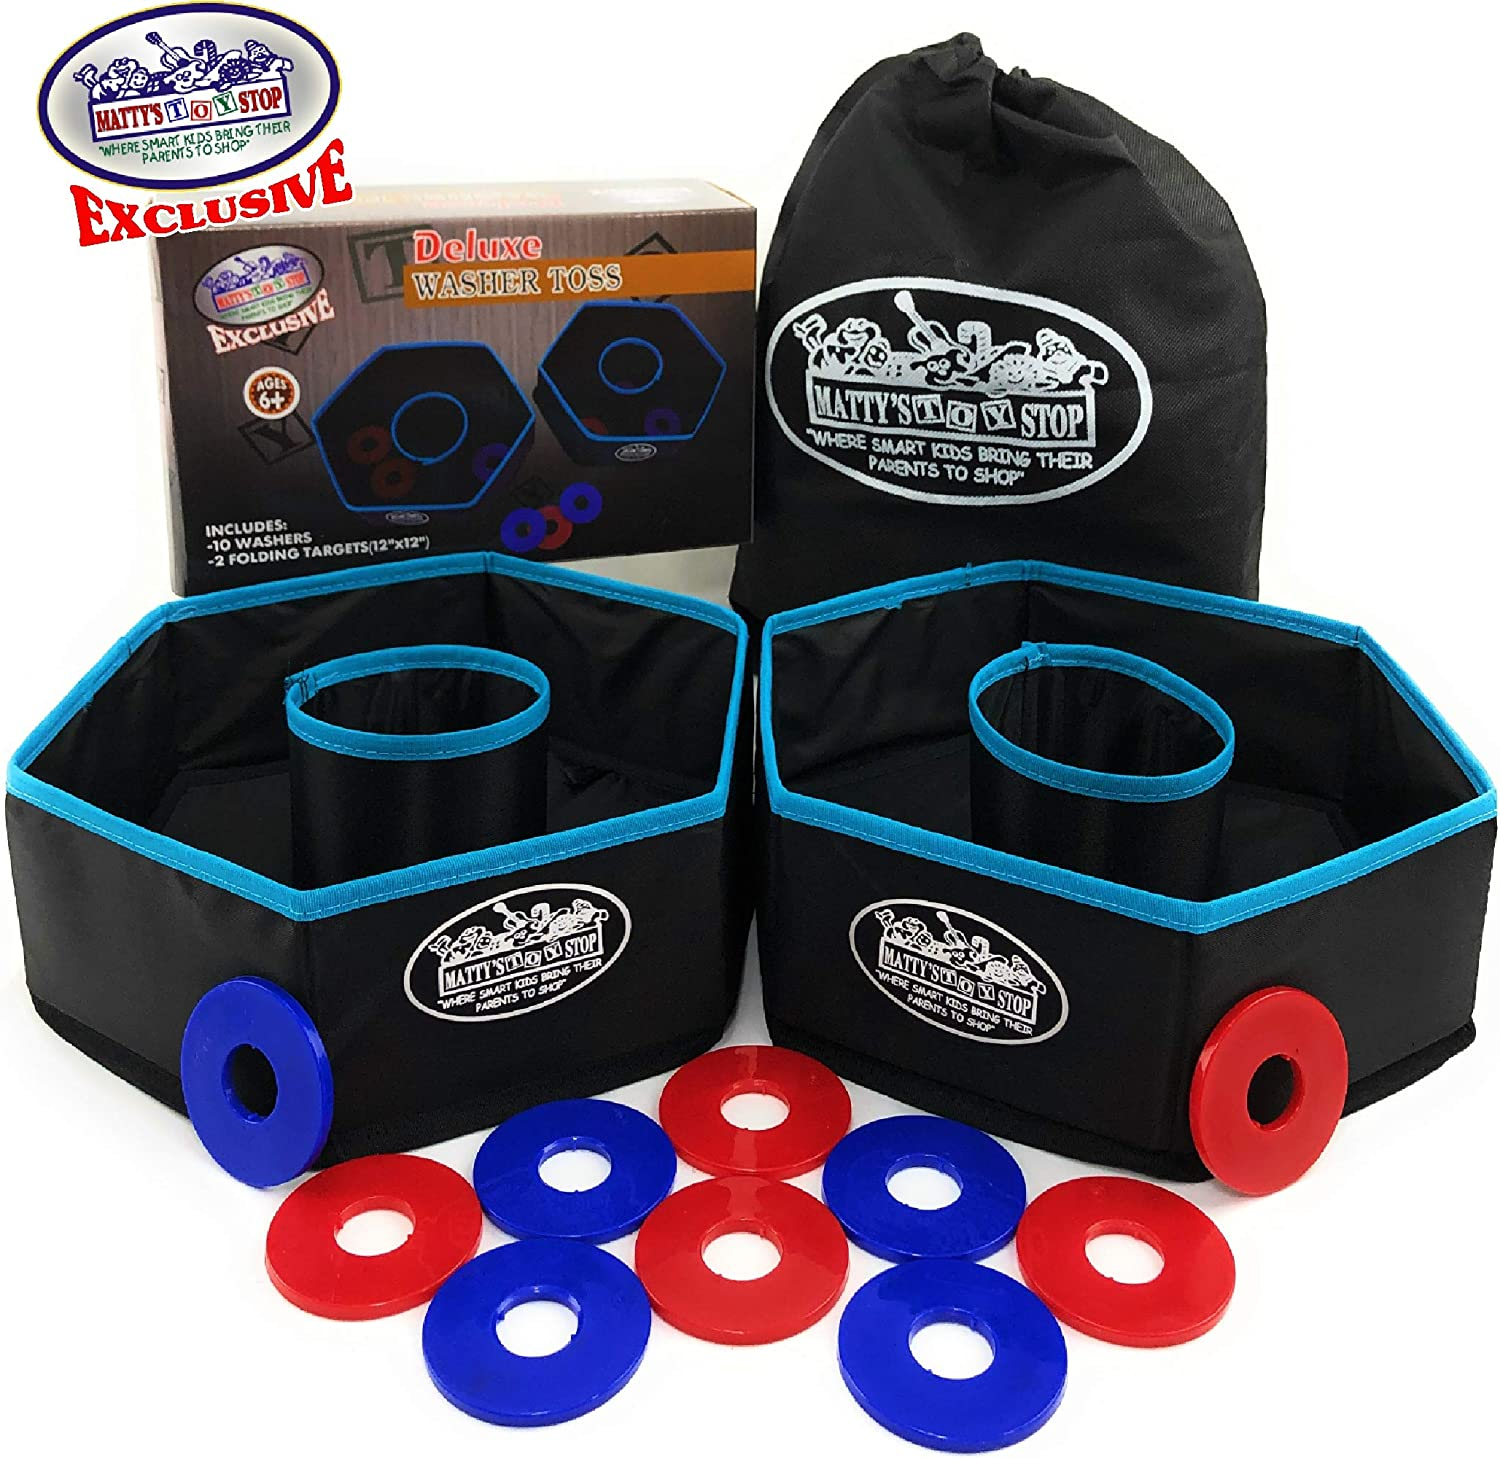 Matty's Toy Stop Deluxe Collapsible Washer Toss Game with 10 Washer Discs & Storage Bag